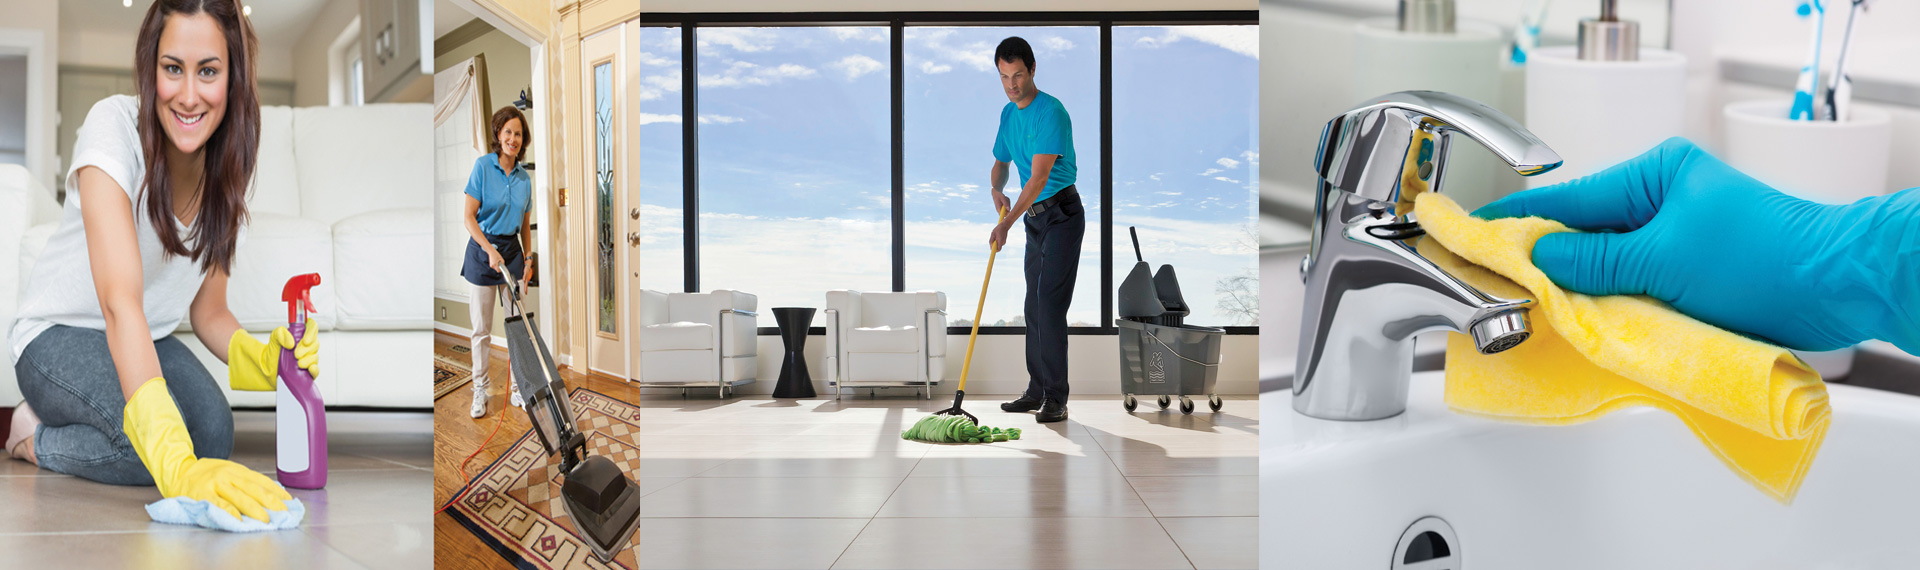 GPS Cleaning Service Columbia MD